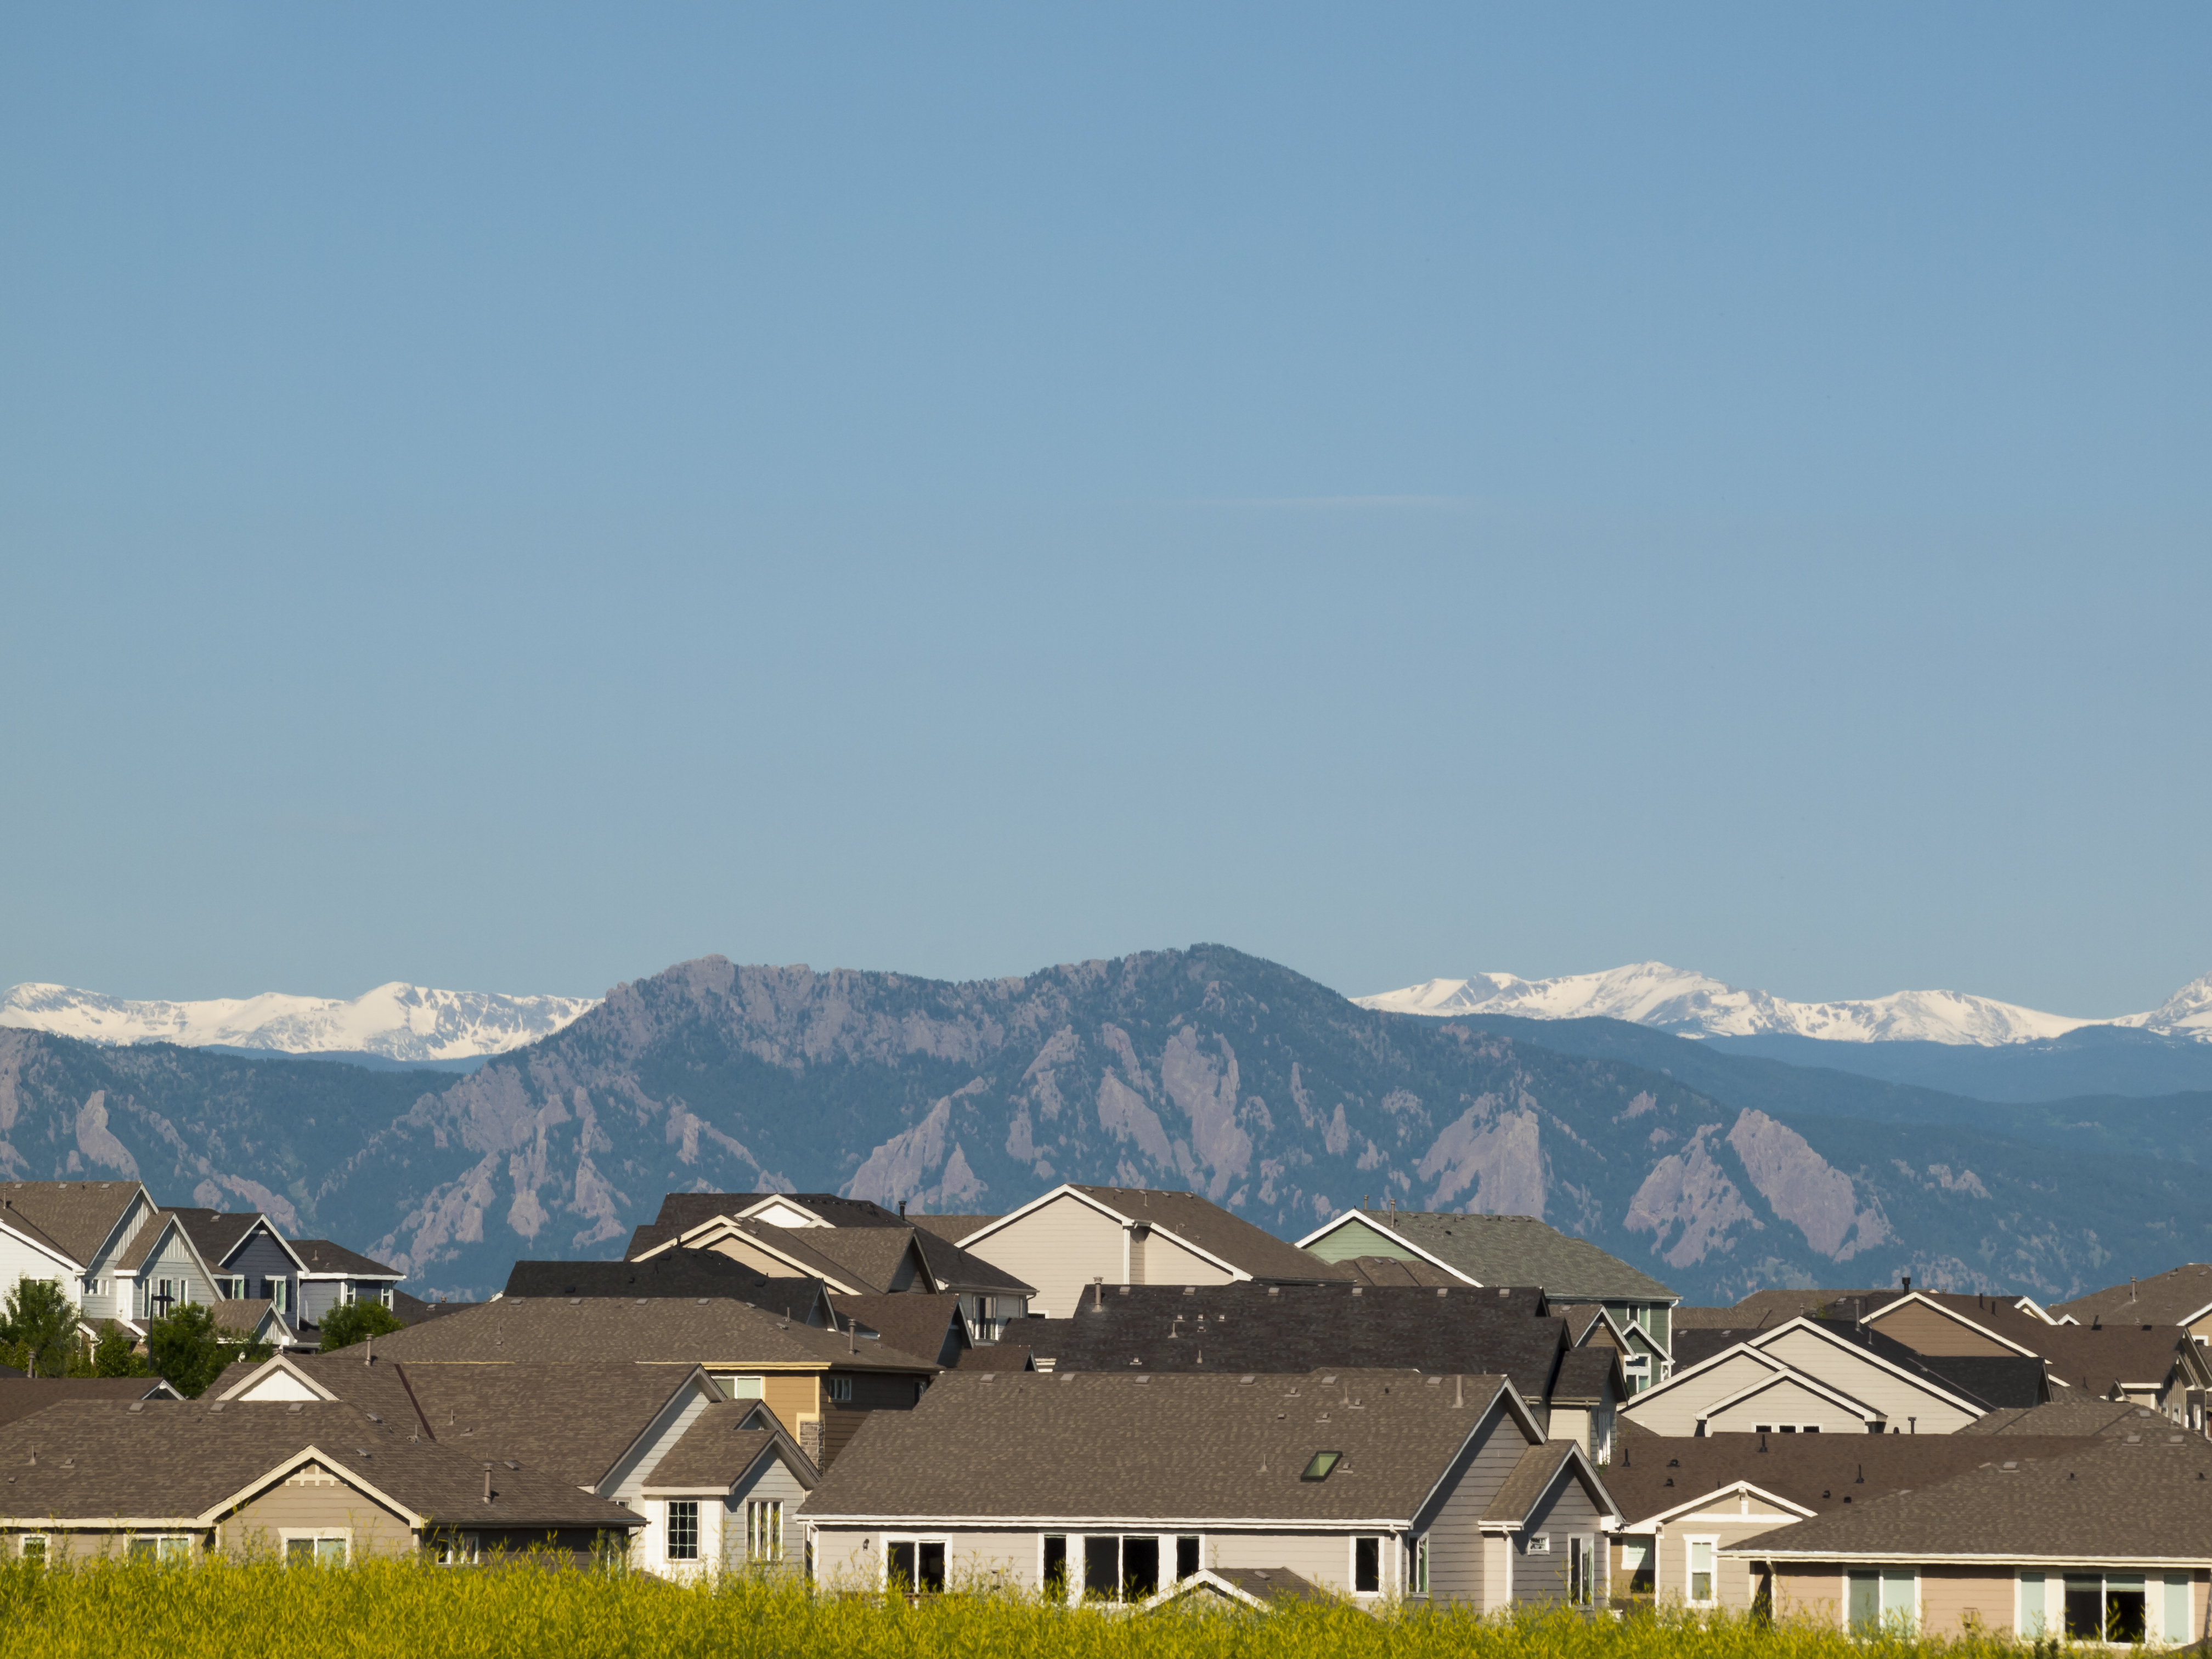 Suburban subdivision in town of Erie, Colorado